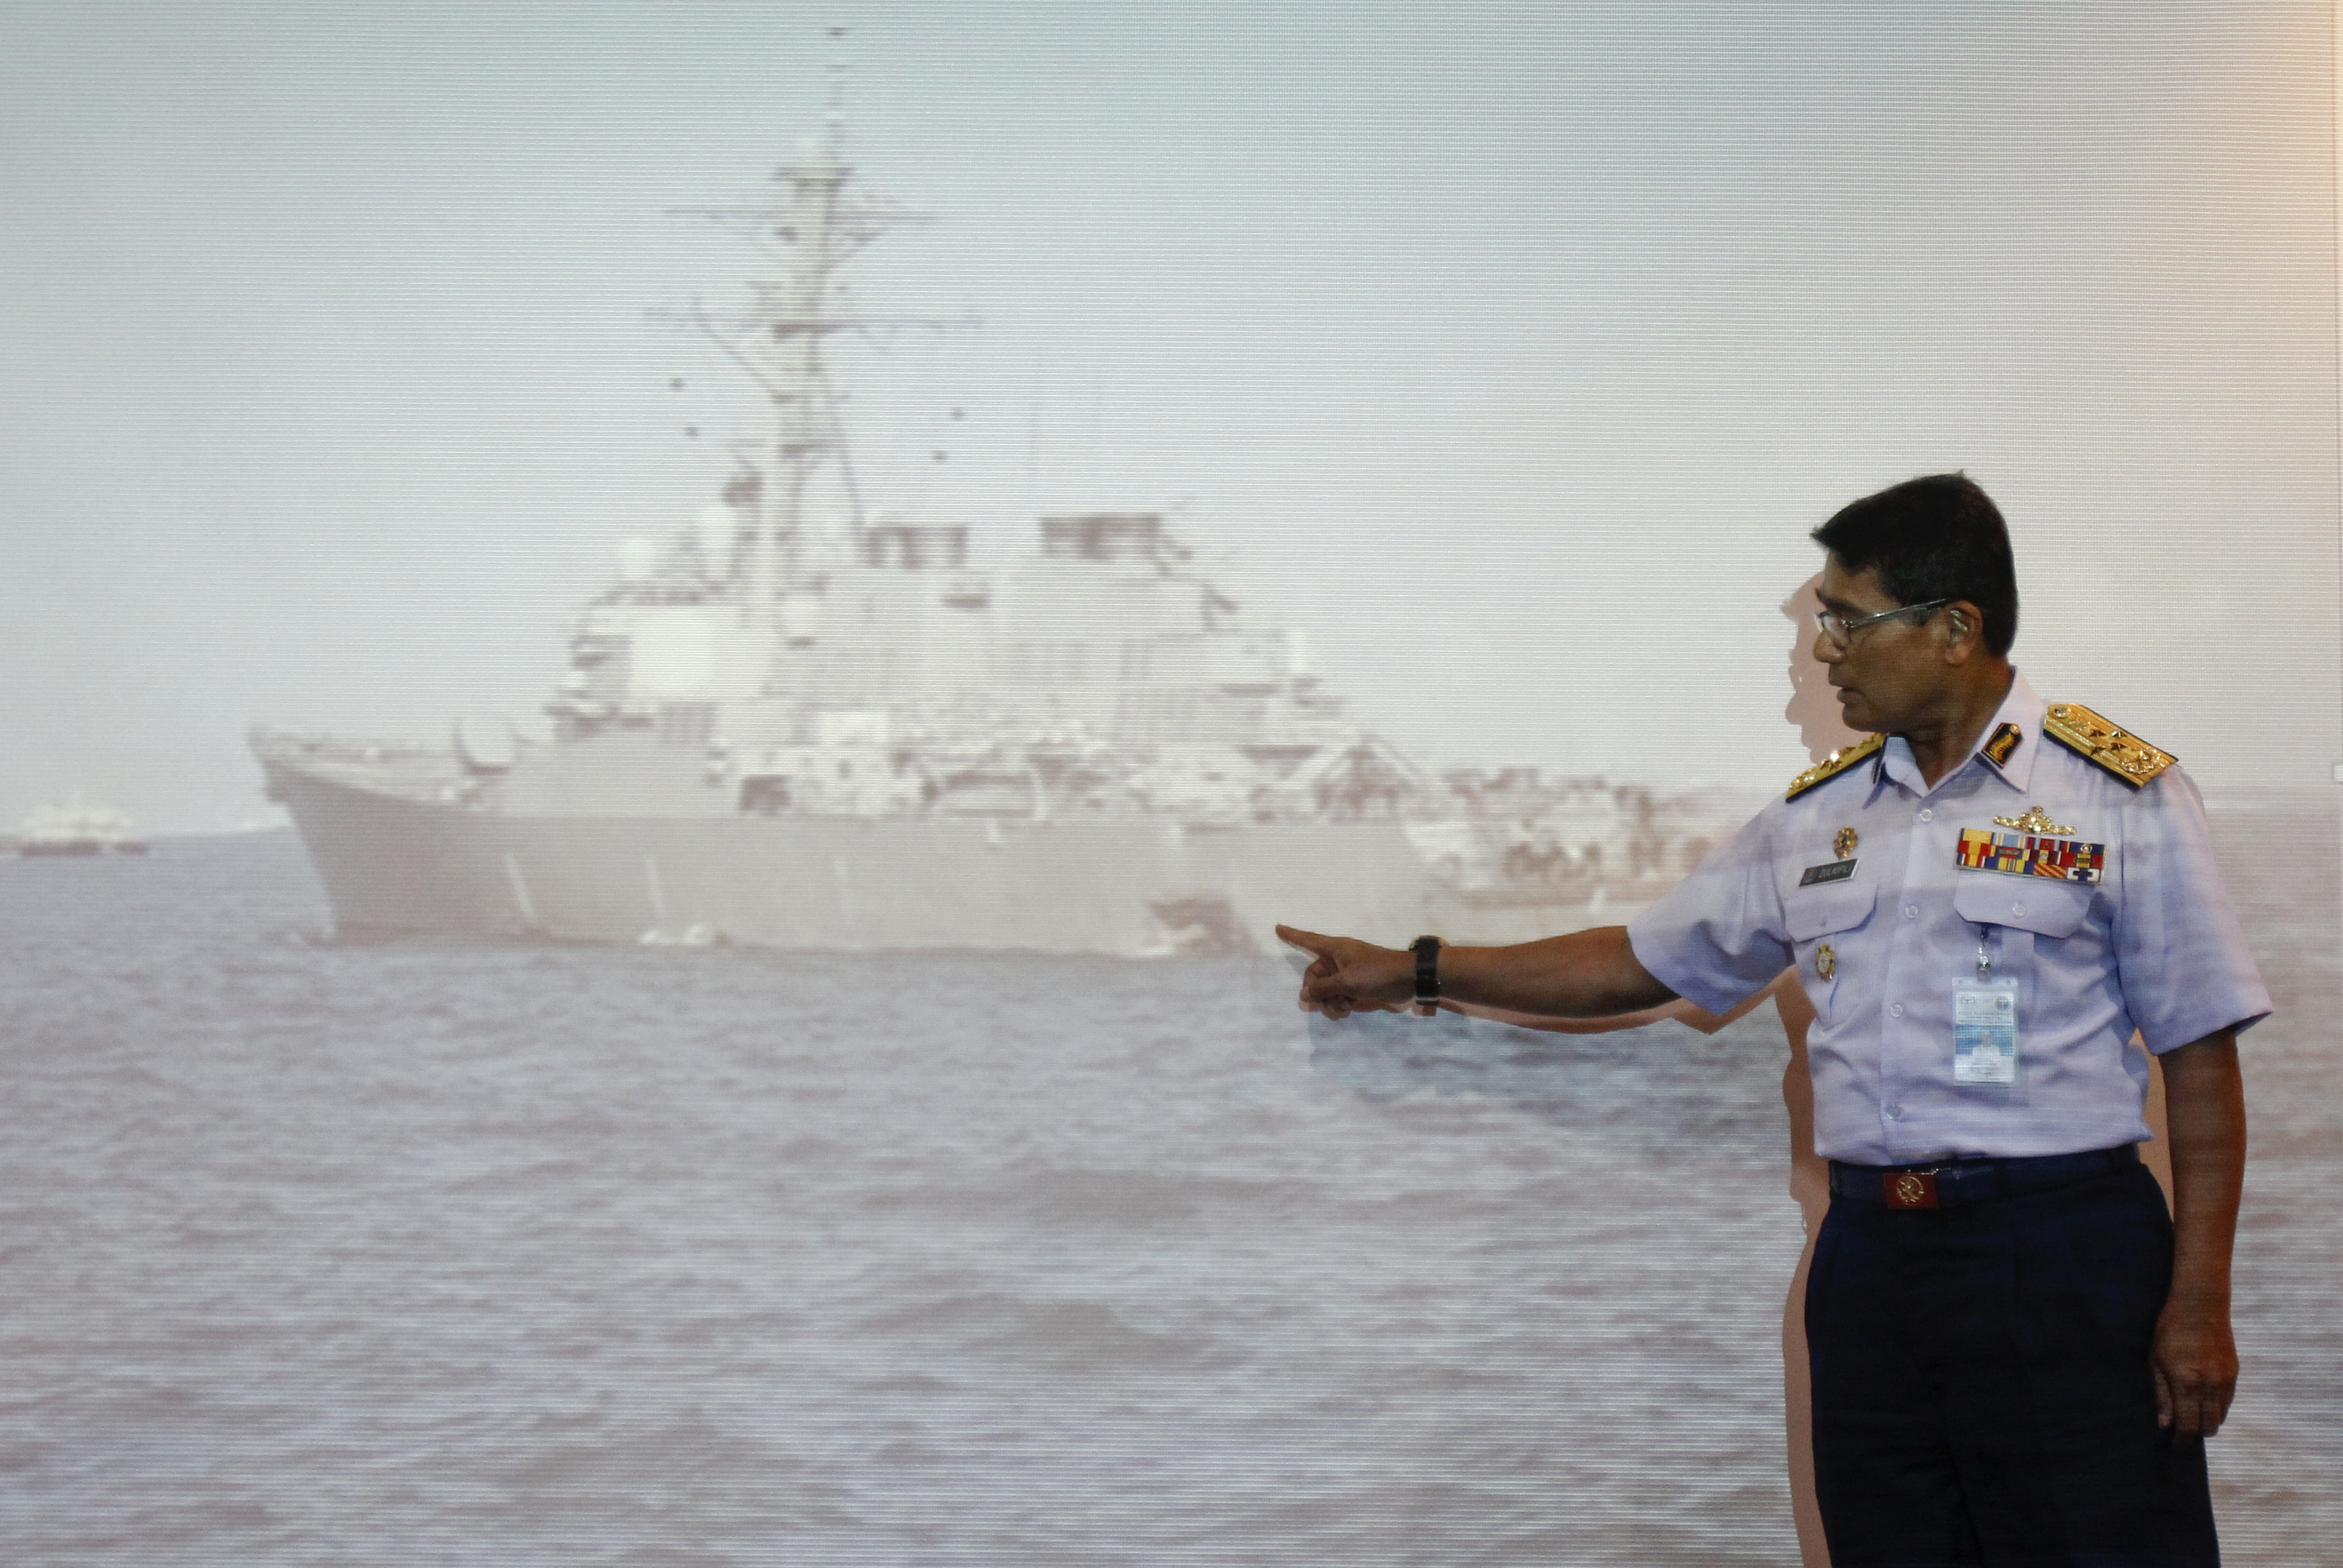 """APTOPIX Malaysia Singapore US Navy Ship Collision-1 Malaysian Maritime Director Indera Abu Bakar points the damage of USS John S. McCain shown on a screen during a press conference in Putrajaya, Malaysia, Monday, Aug. 21, 2017. The U.S. Navy said the USS John S. McCain arrived at Singapore's naval base with """"significant damage"""" to its hull after a collision early Monday between it and an oil tanker east of Singapore. A number of U.S. sailors are missing after the collision, the second accident involving a ship from the Navy's 7th Fleet in the Pacific in two months. (AP Photo/Daniel Chan)"""